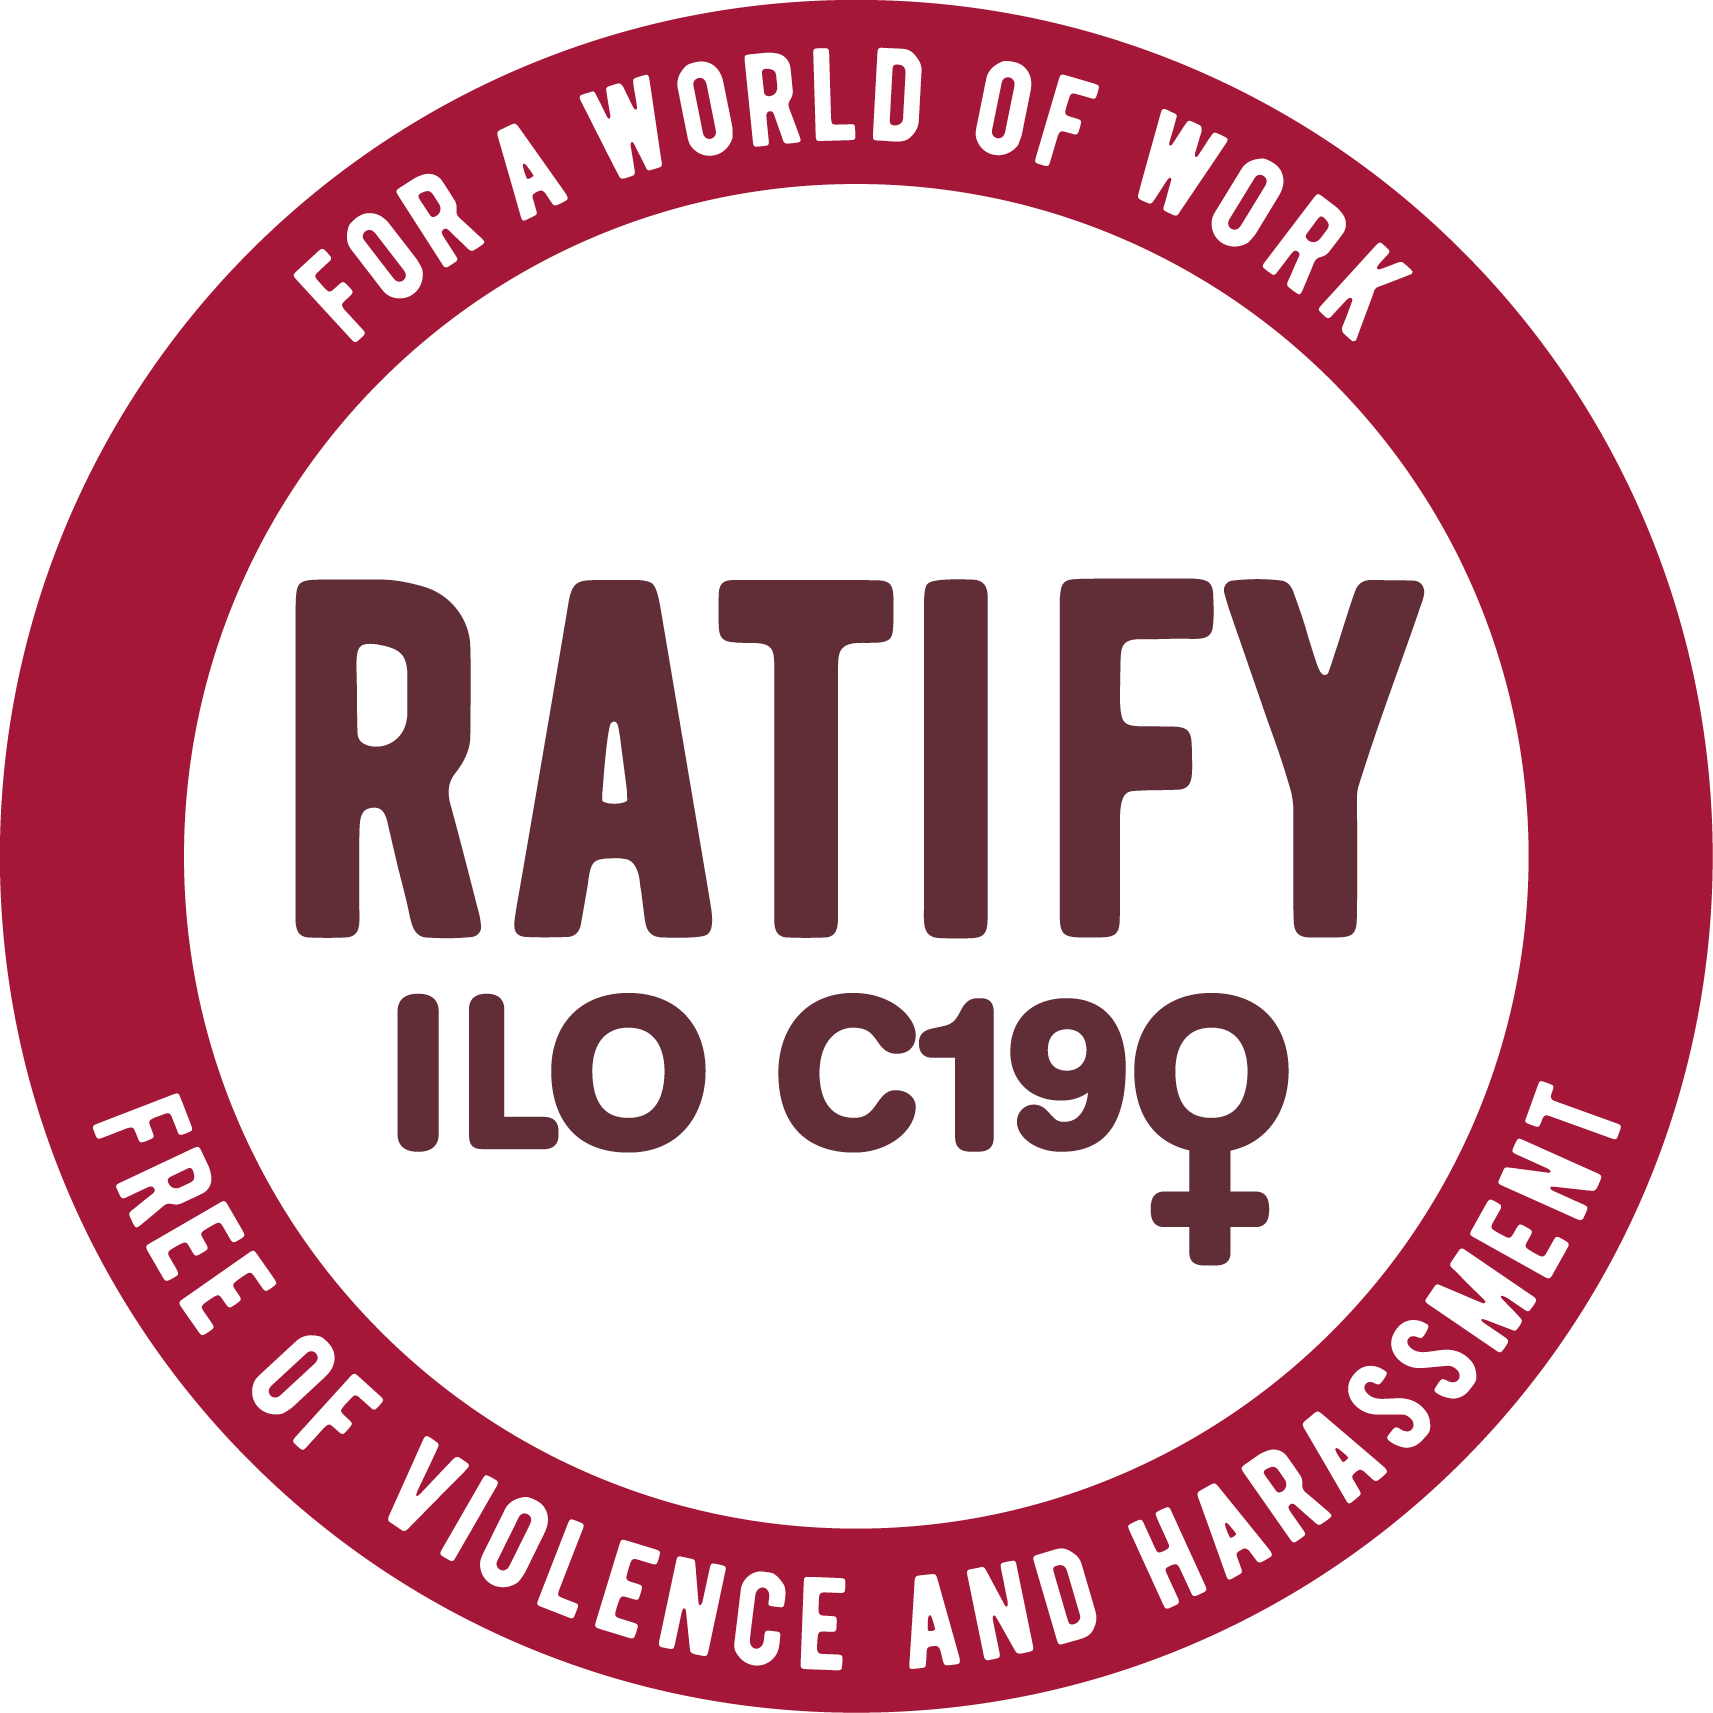 ratify ILOC190 RED EN